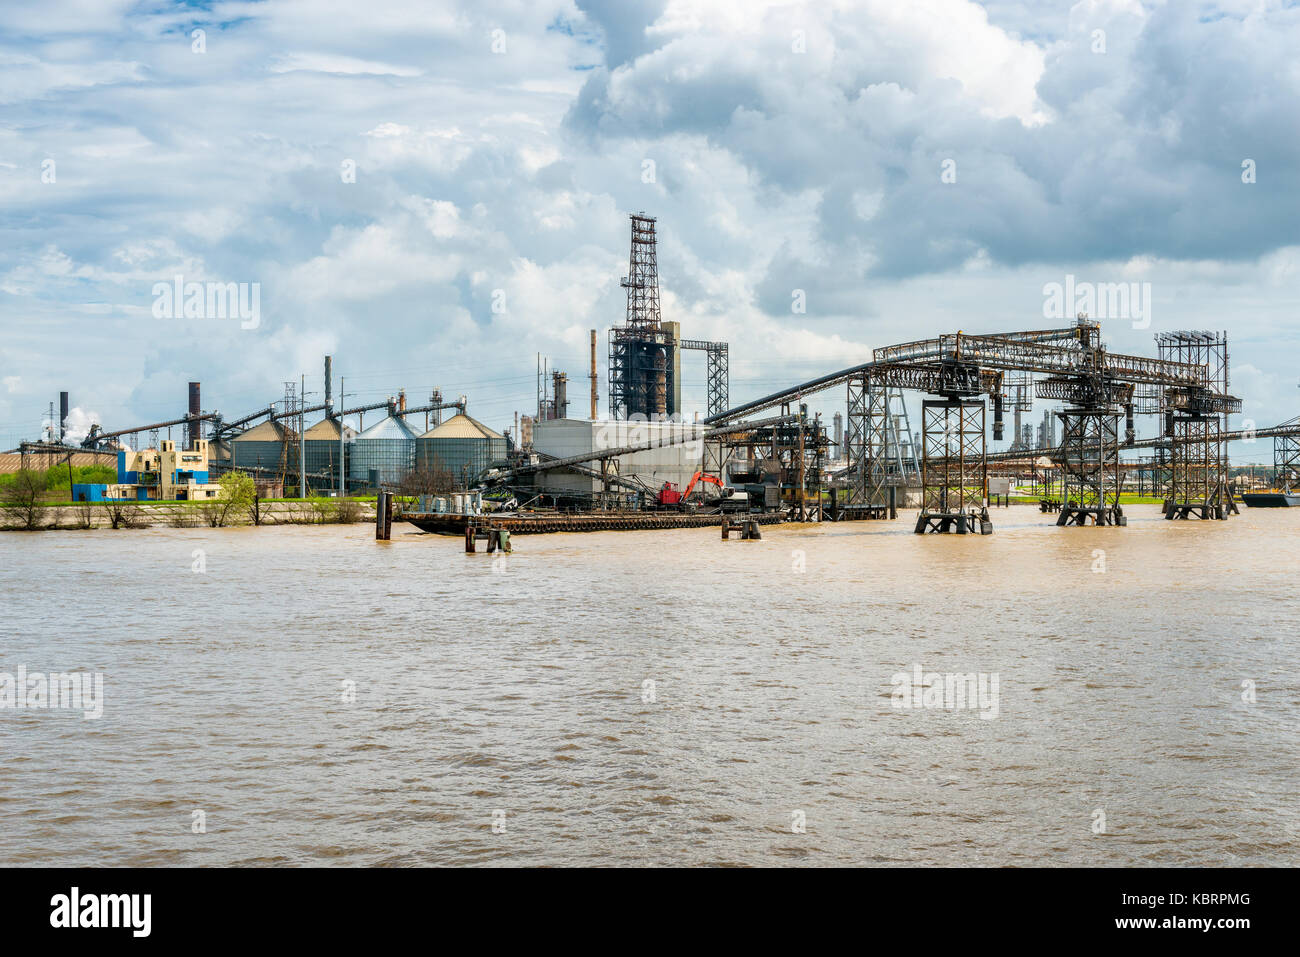 Heavy Industry along the Mississippi River in New Orleans - Stock Image